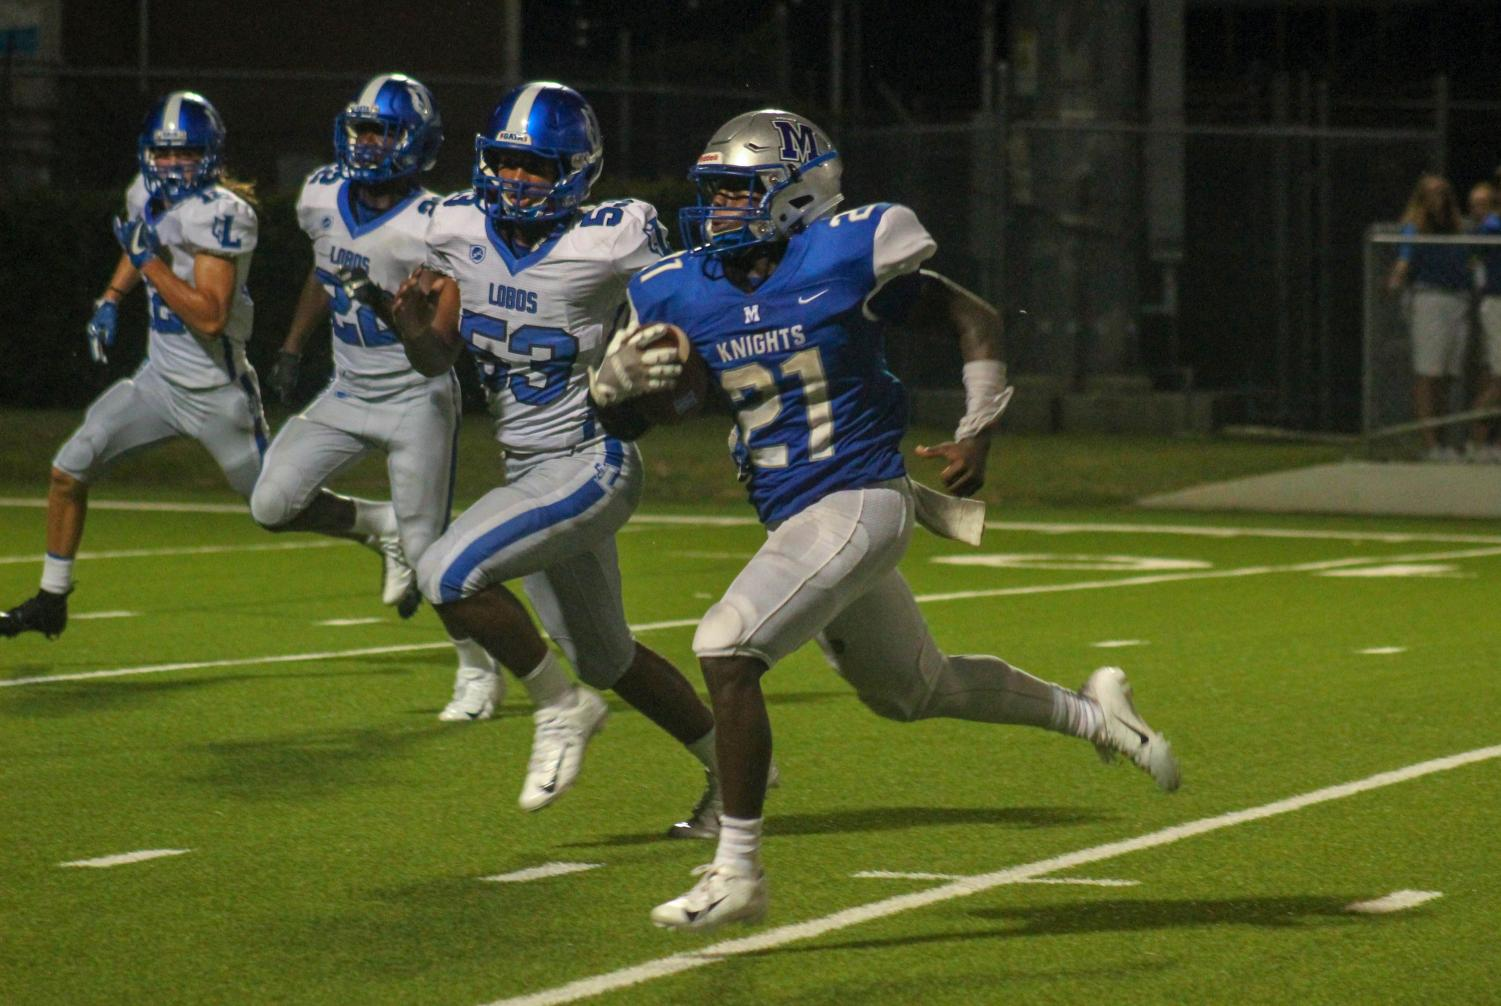 Jalen Sutton ran for 252 yards and three touchdowns from scrimmage and ran back a kickoff 88 yards for another touchdown on the games opening play. Photo by Annabel Winter.